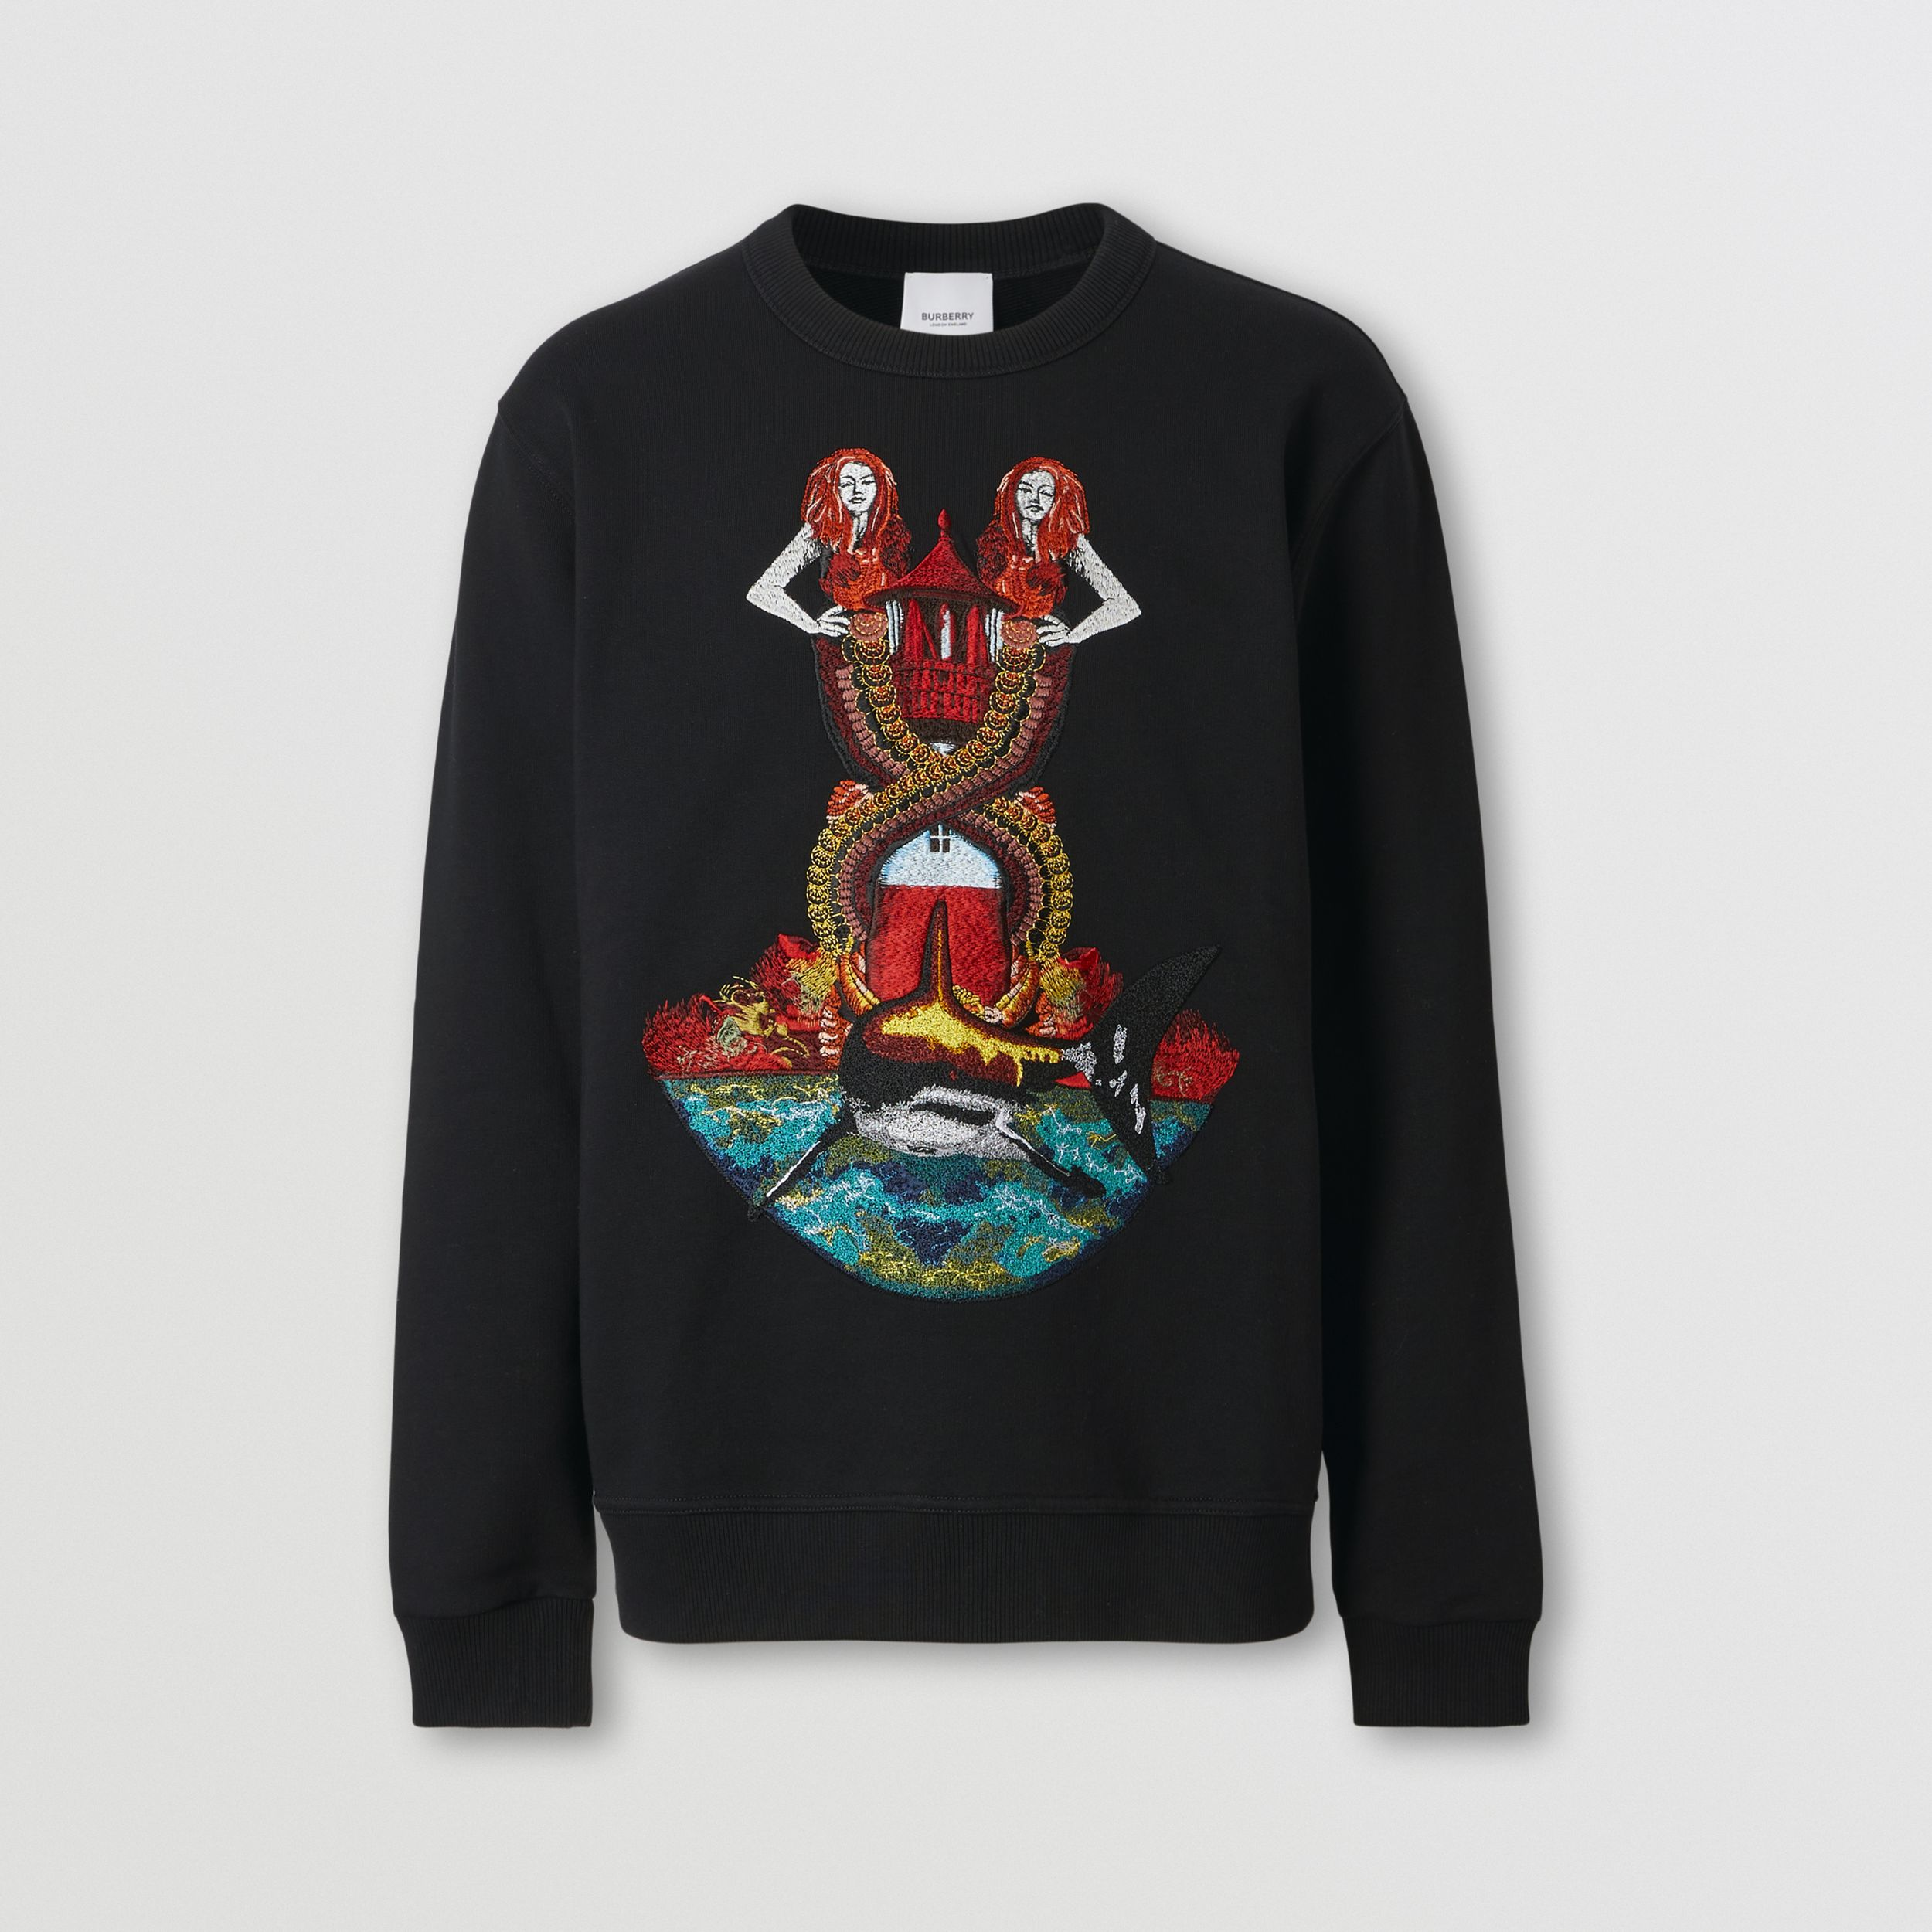 Mermaid Print Cotton Sweatshirt in Black - Men | Burberry - 4